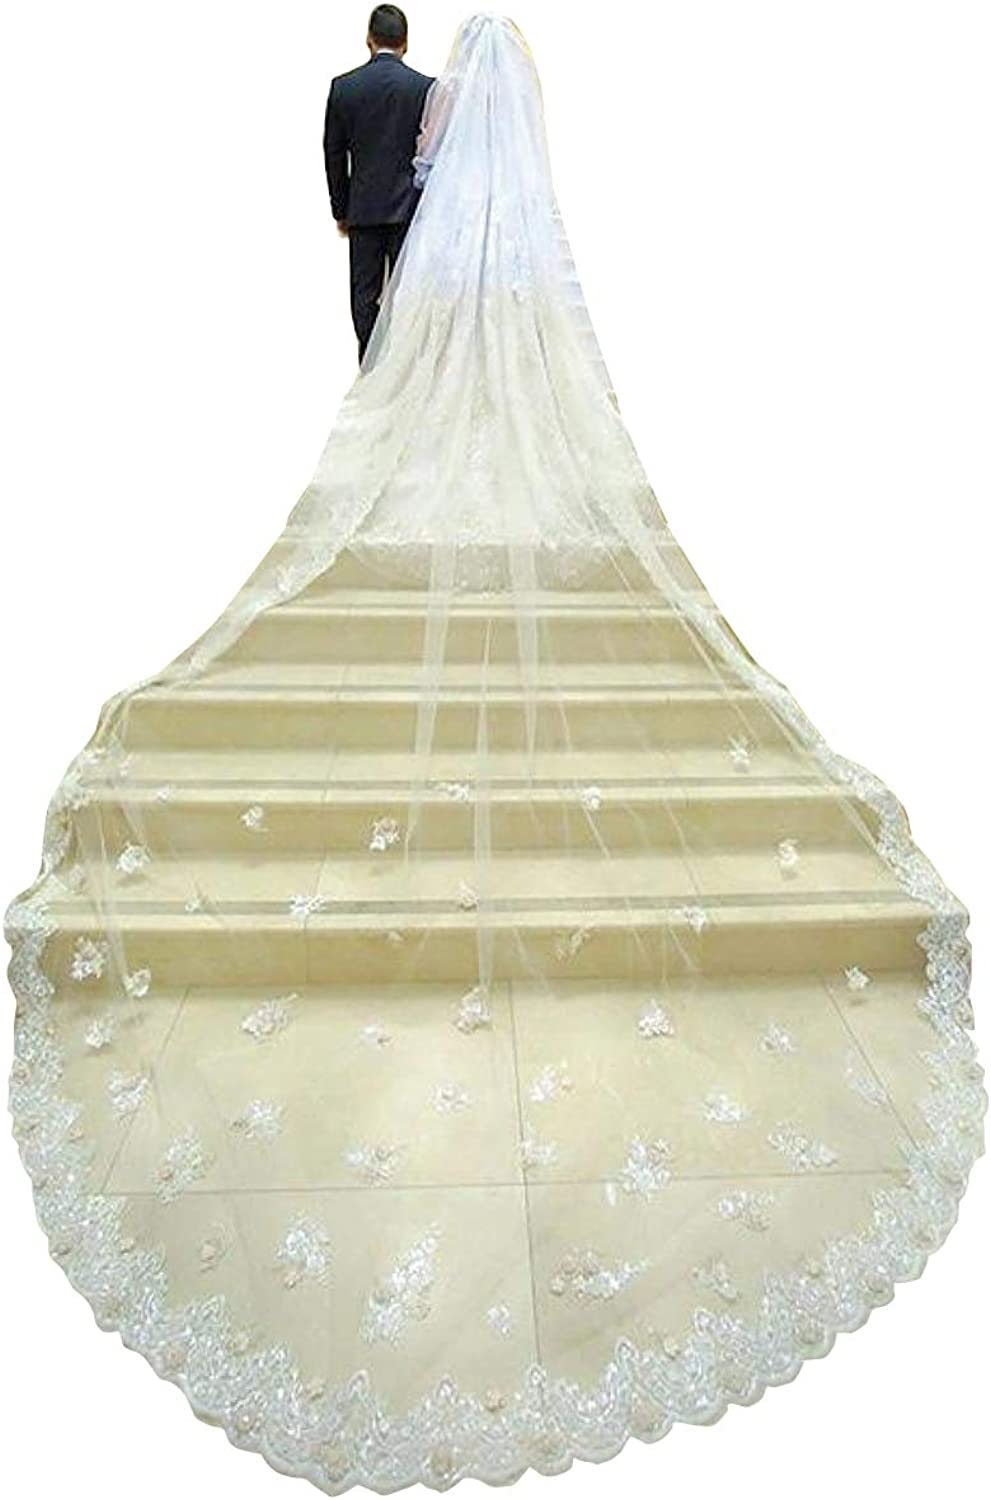 Bridal Veil Ivory White Lace Edge Cathedral Length Long Women Wedding Bridal Veil With Comb